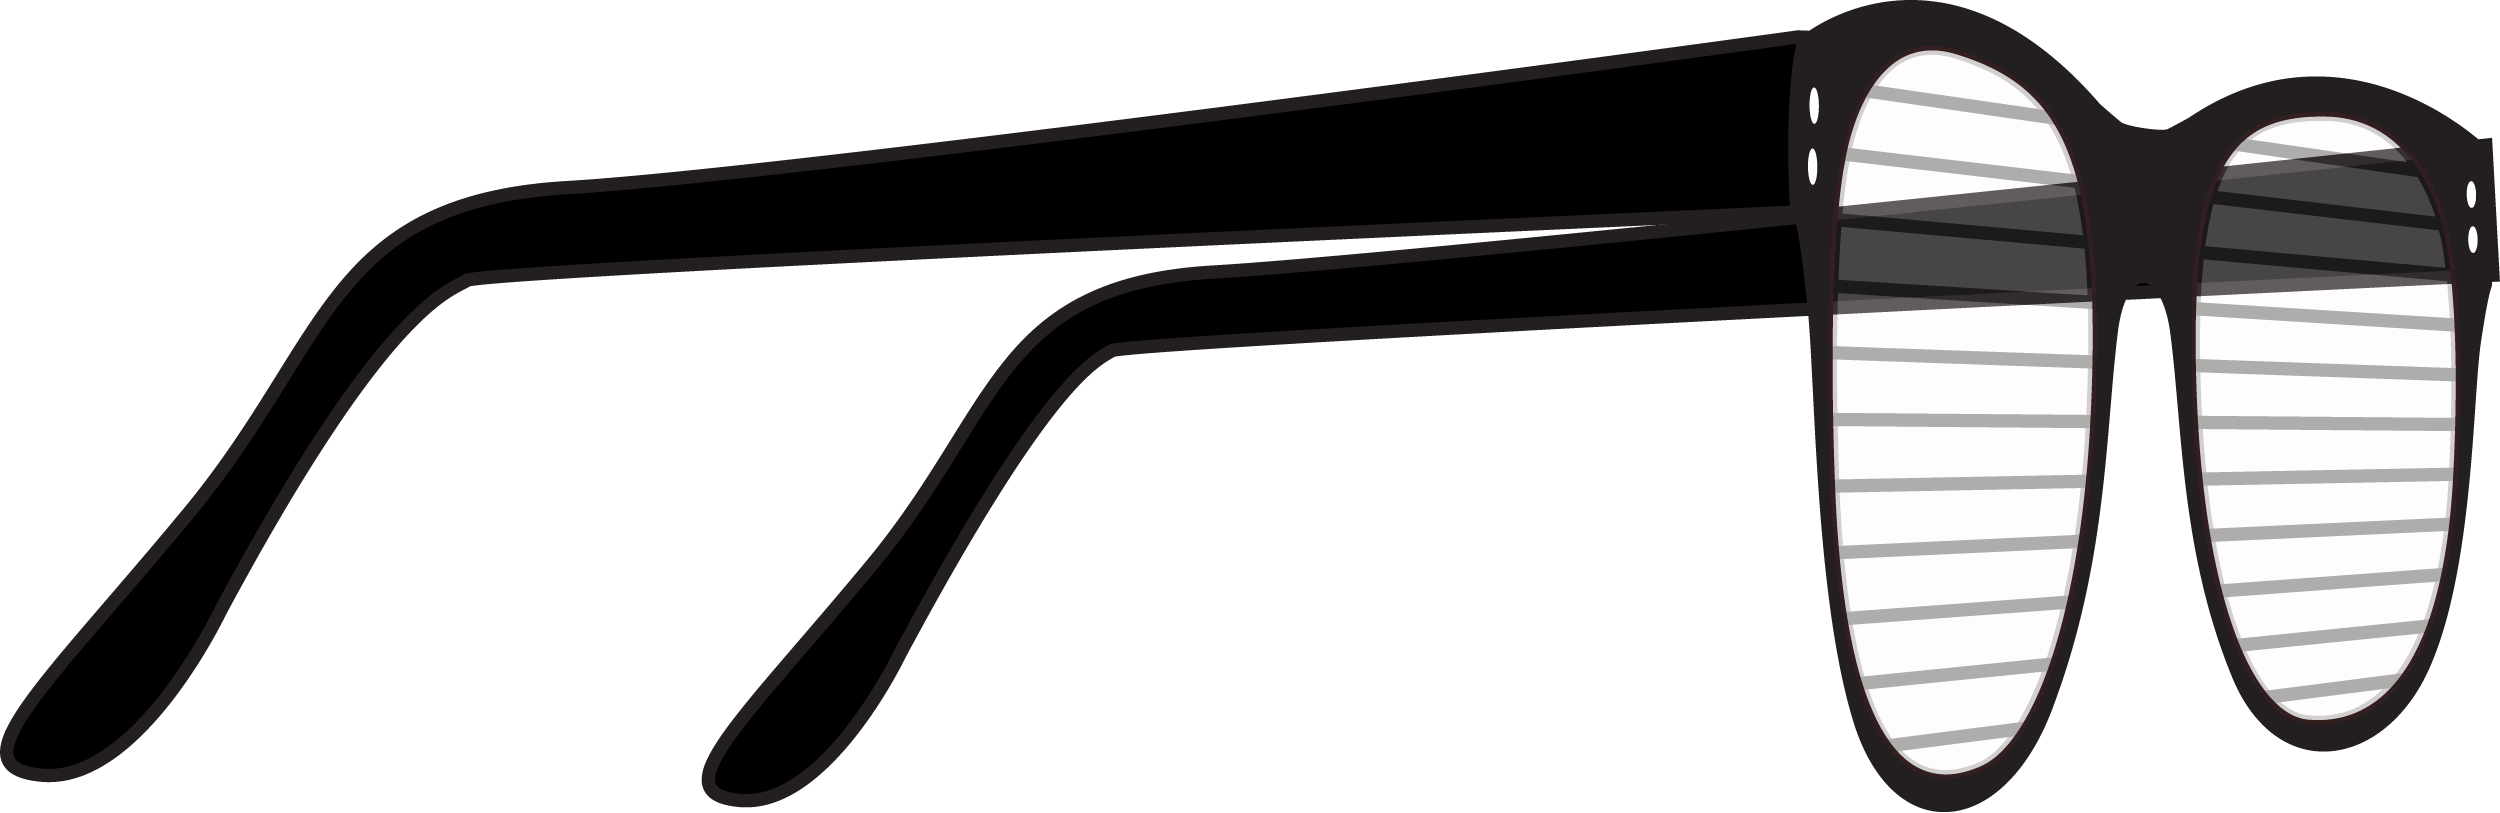 Glasses PNG Side view Clip-art